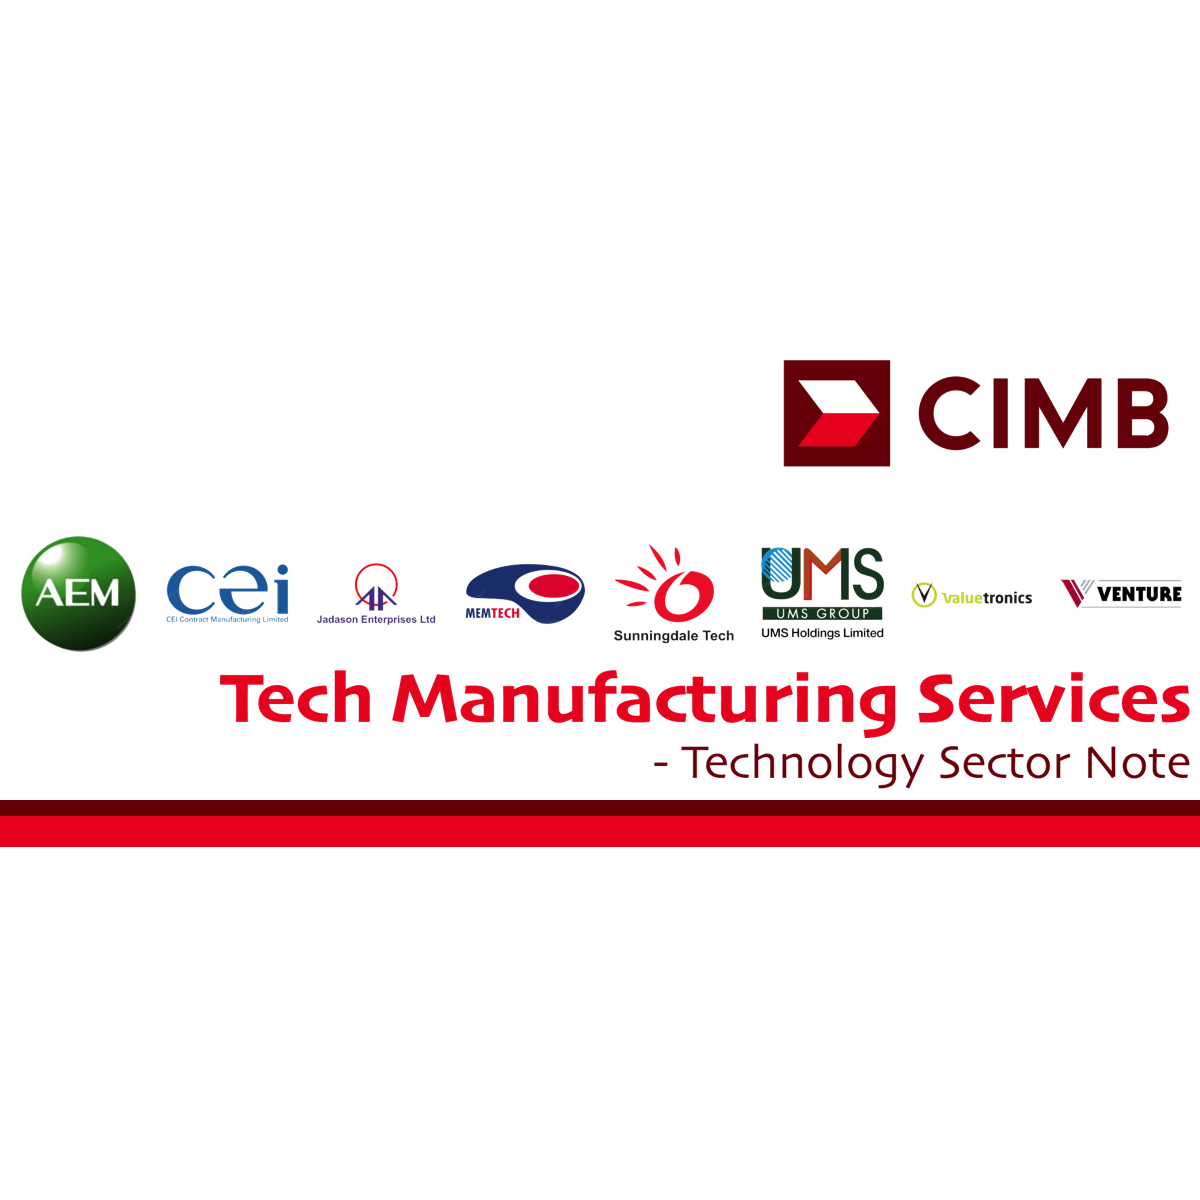 Tech Manufacturing Services - CGS-CIMB 2018-05-25: Clouded By Trade Tensions